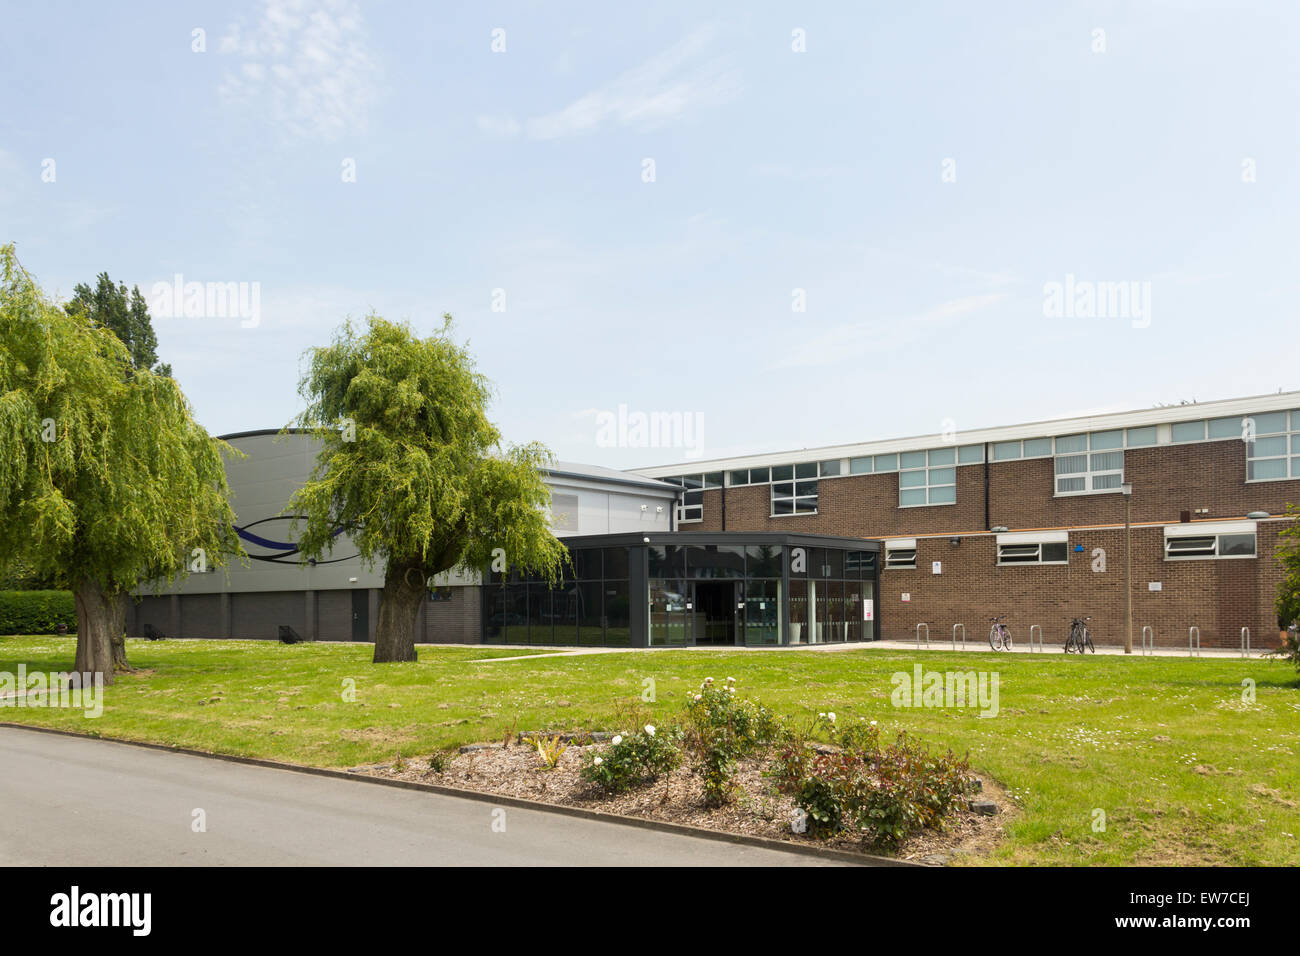 Irlam and Cadishead leisure centre, in  the borough of Salford. The centre, built in 1965, was extensively refurbished - Stock Image